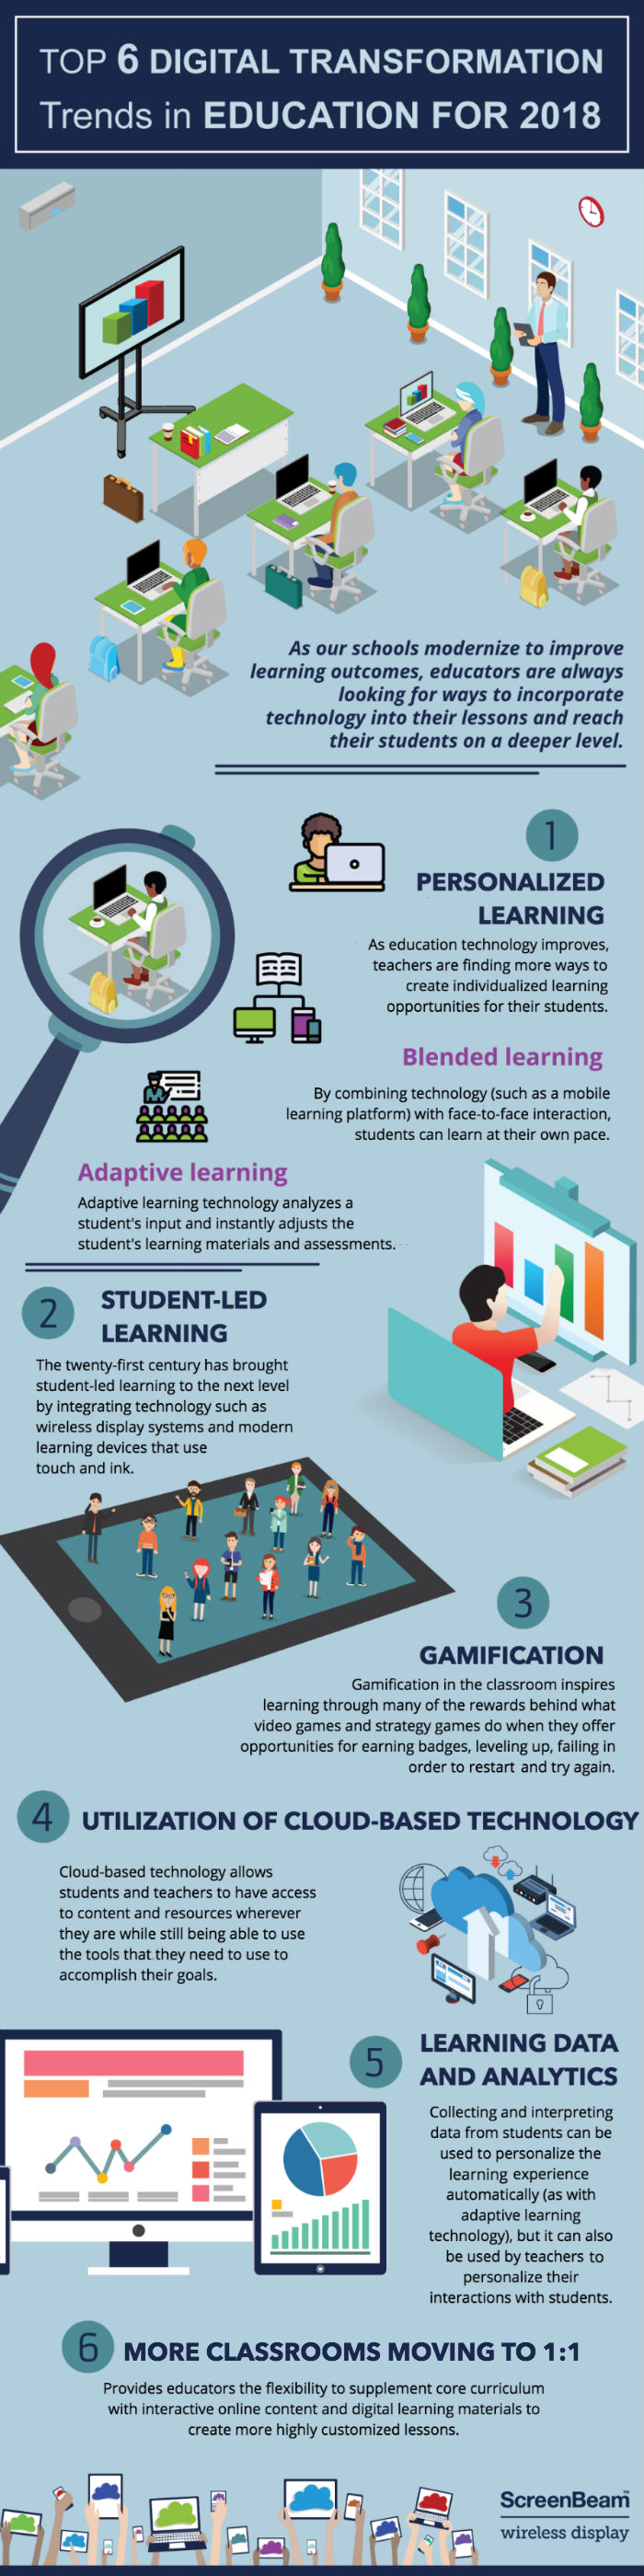 digital transformations in education